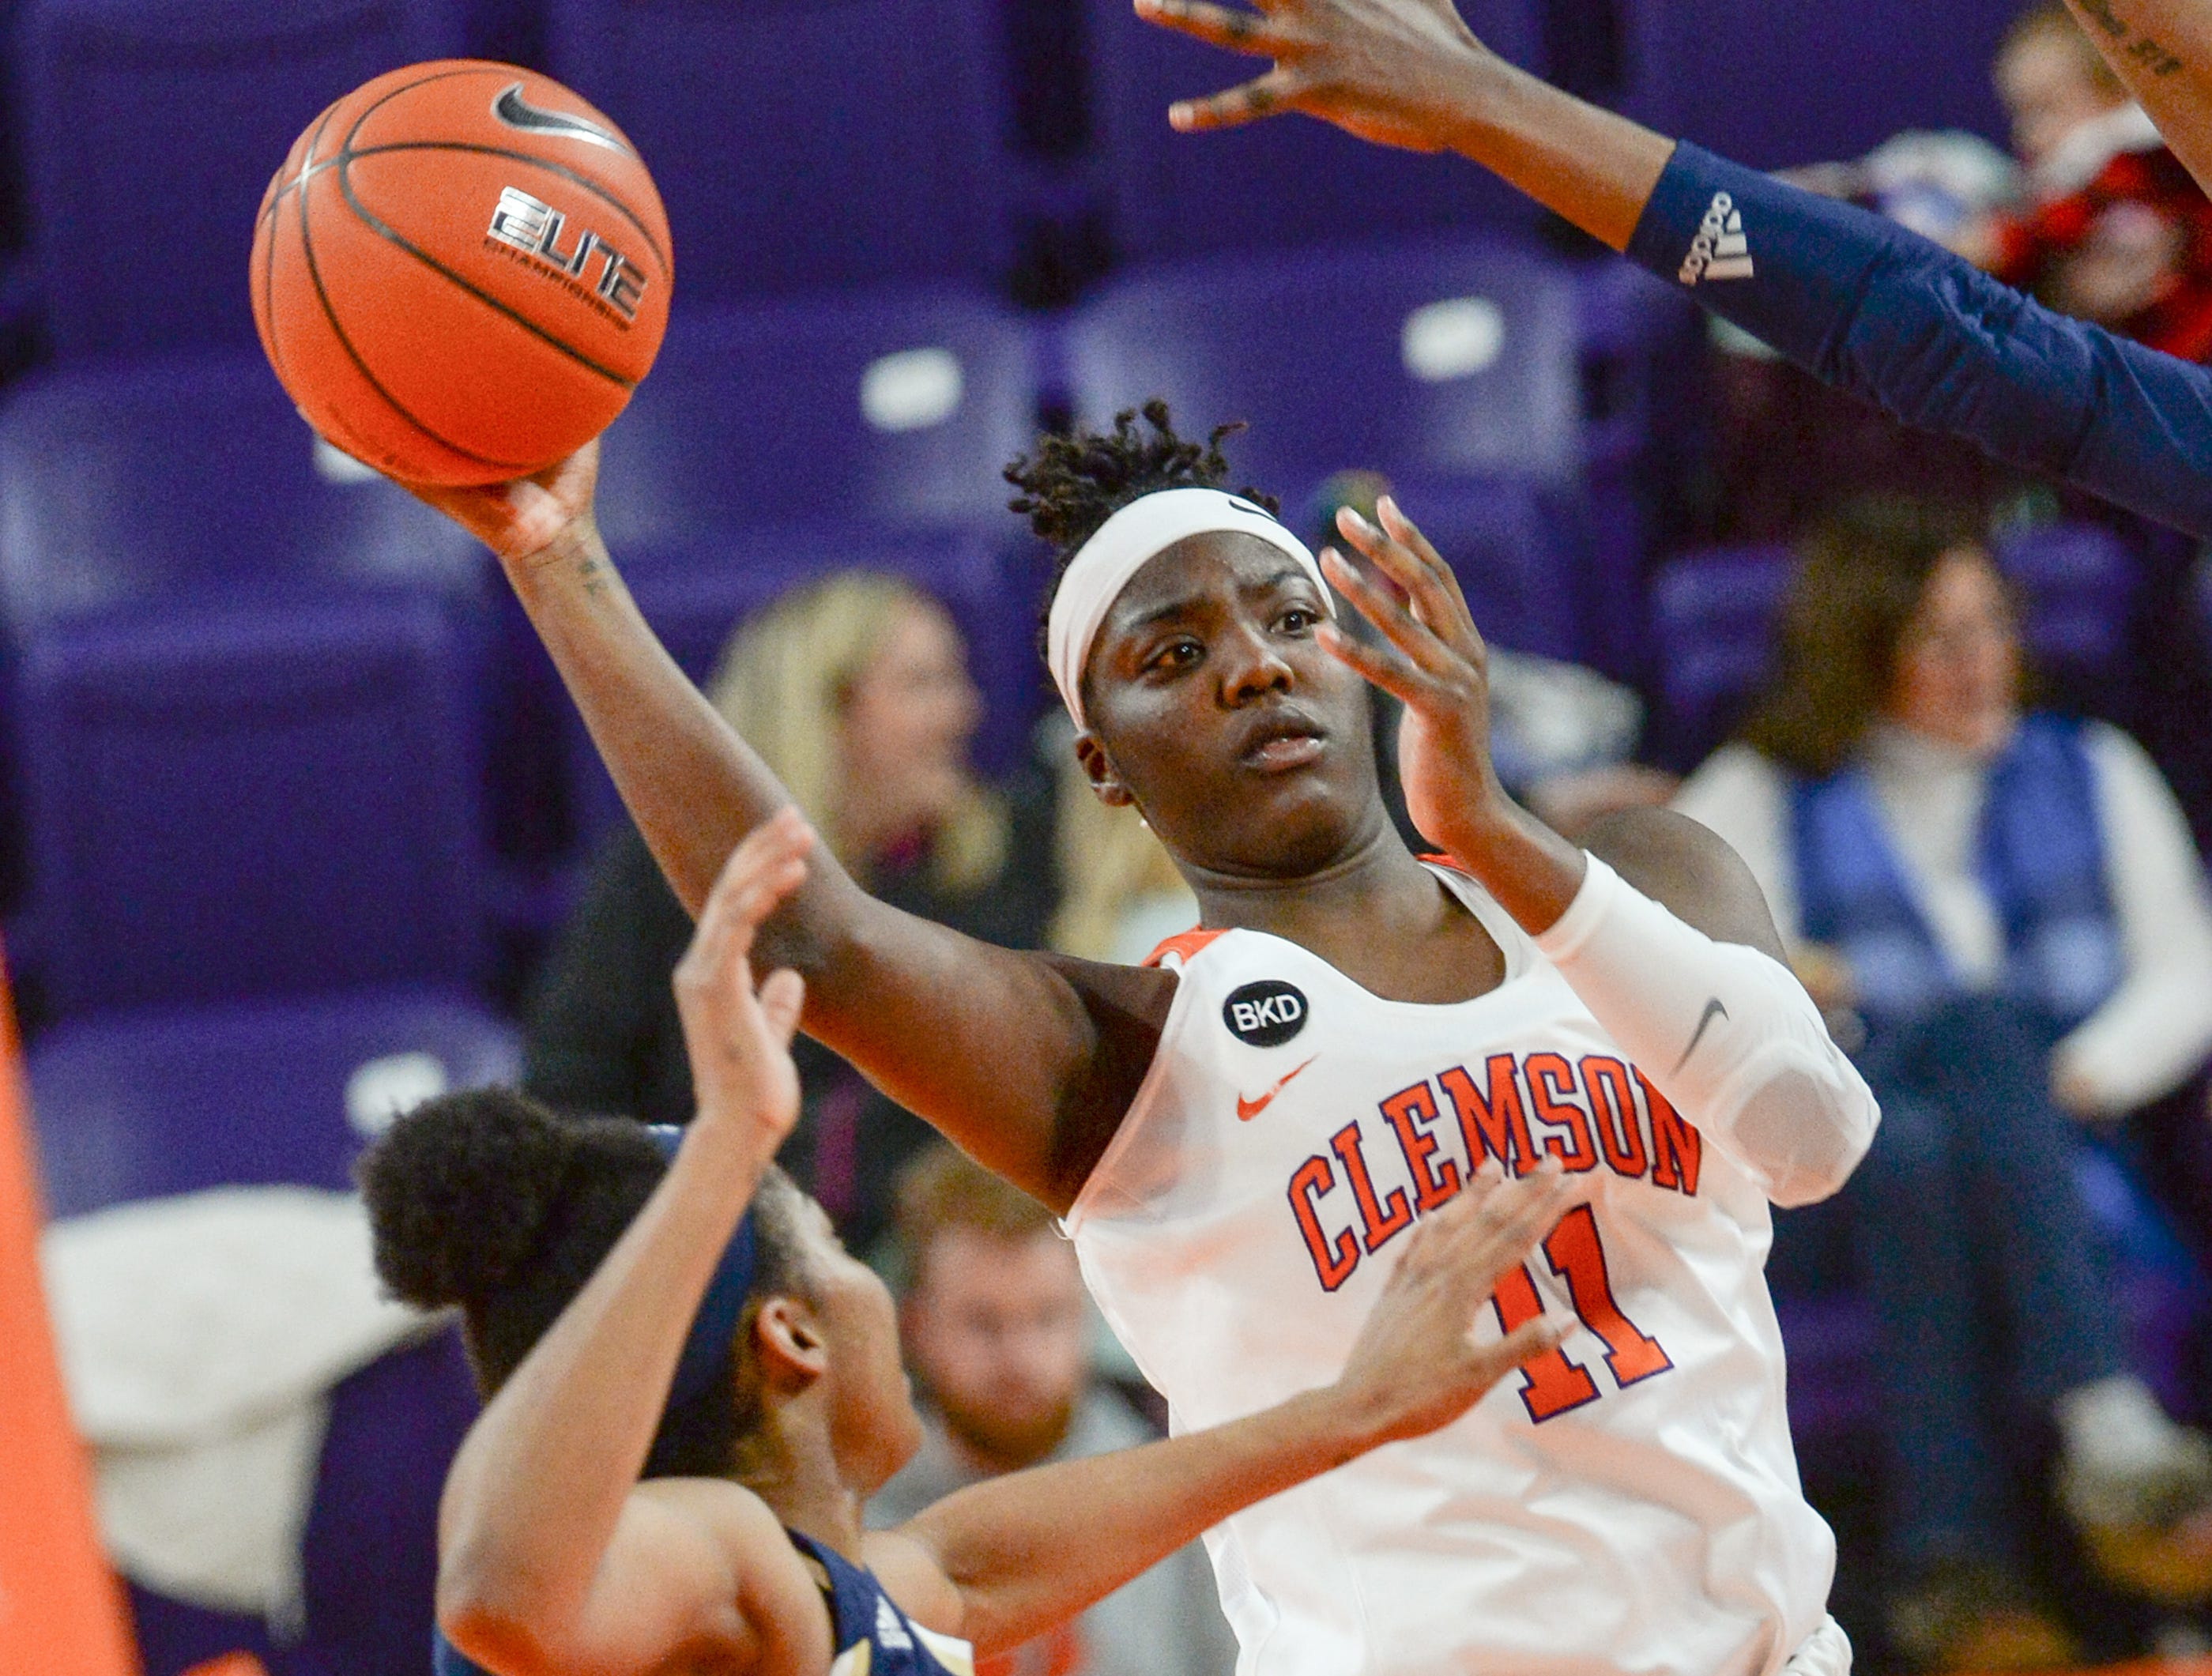 Clemson forward Taylor Hosendove(11) passes near Georgia Tech guard Liz Balogun(5) during the second quarter at Littlejohn Coliseum in Clemson Thursday, January 17, 2019.